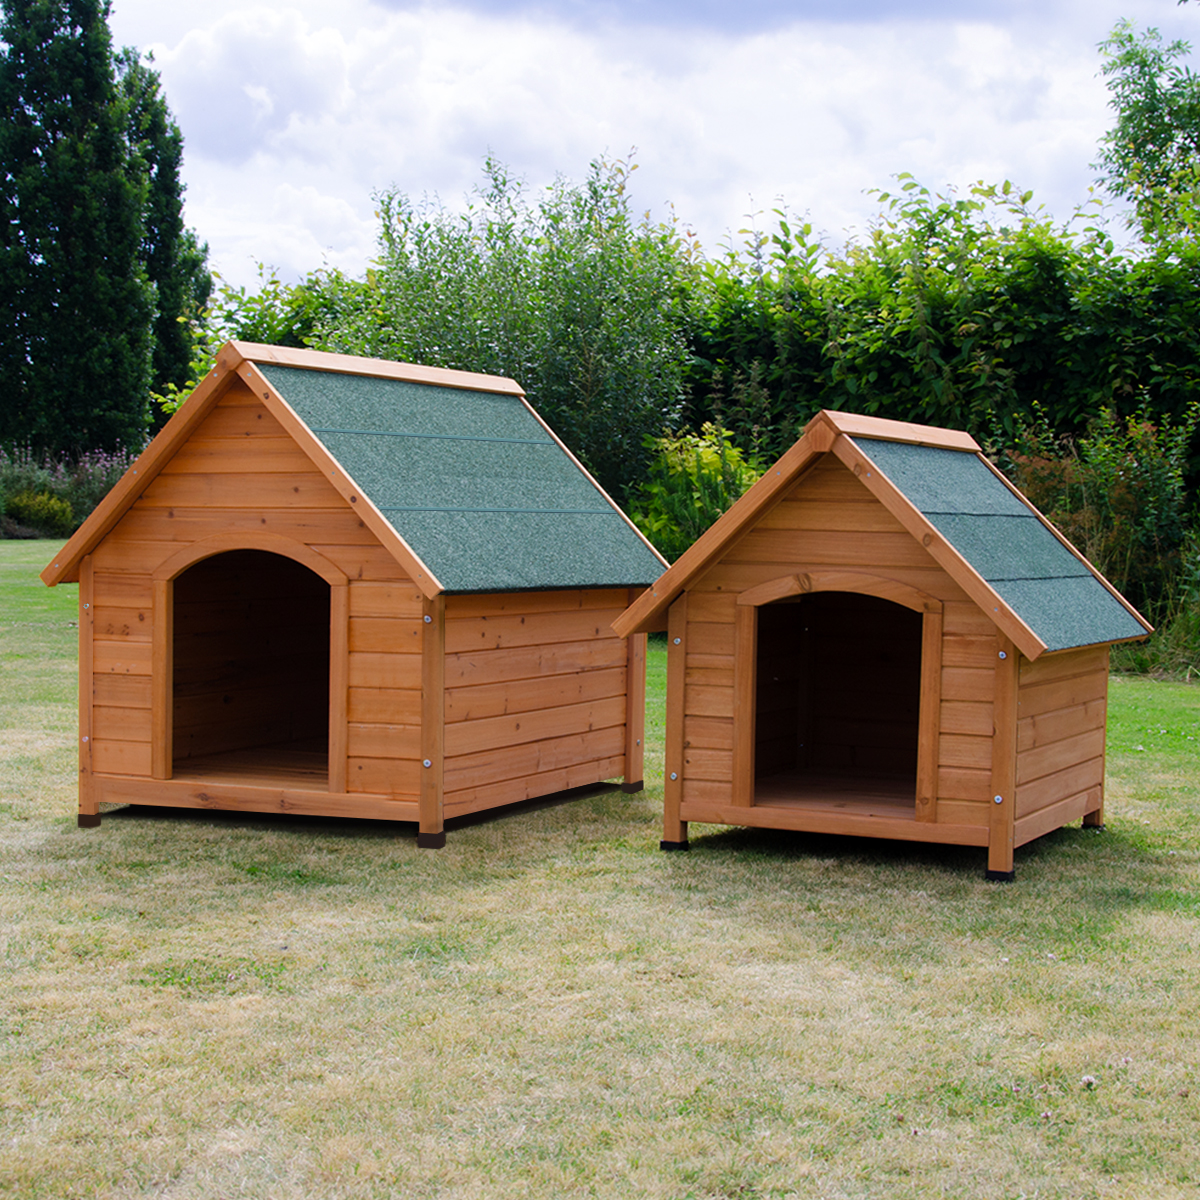 Sentinel Oxford Dog Kennel Wooden Pet House Apex Roof Outdoor Shelter Wood Home